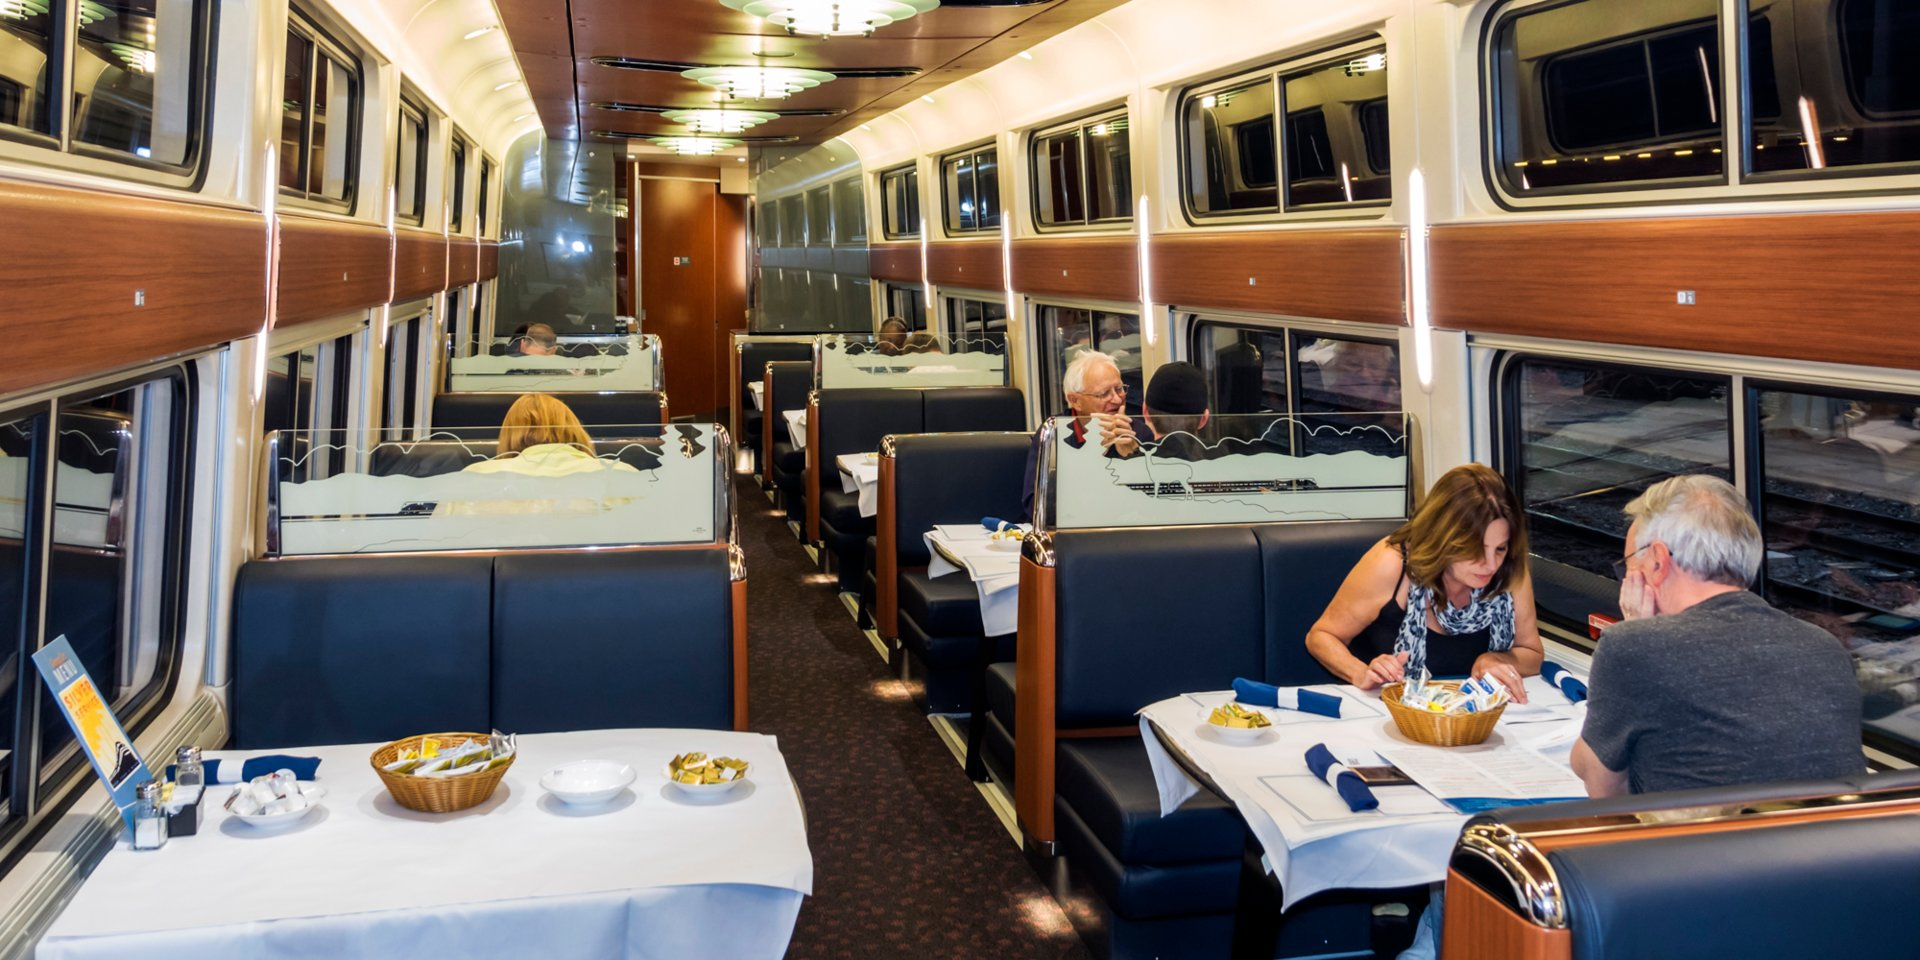 Amtrak is blaming millennials as it cuts back on dining-car meals — and the internet's not buying its logic